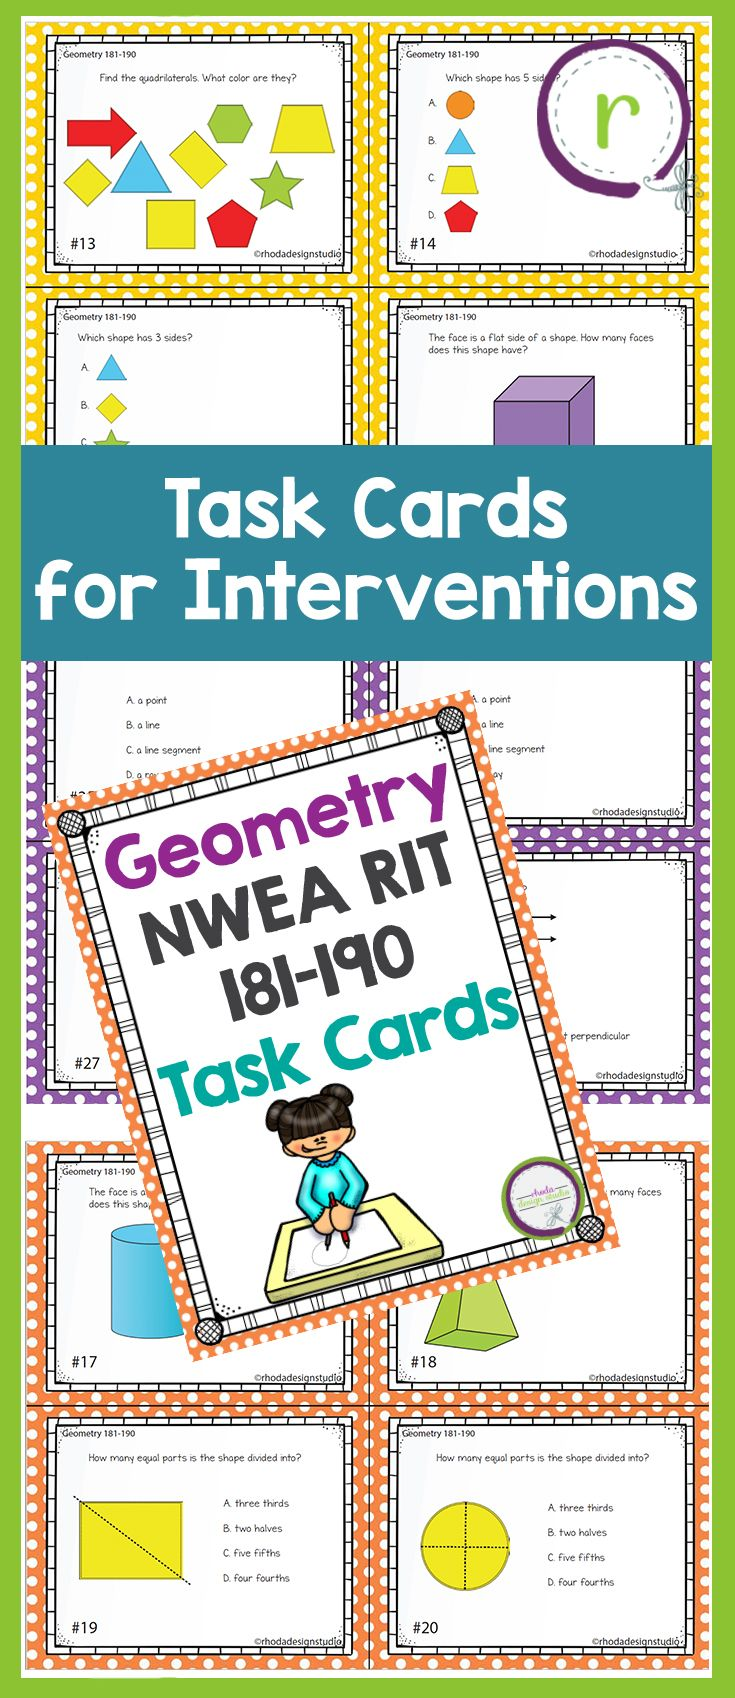 These task cards cover general Geometry questions and concepts.  Skills are for the NWEA RIT Band 181-190: Geometry include: defining coordinates, sides, angles, visualizing new shapes, naming 2D shapes, faces and sides of 3D shapes, parallel and perpendicular lines, and lines of symmetry.  These can be used as review, for test prep, independent centers, or to assess skills that your students need to master. 3rd and 4th grade math. teacher resources